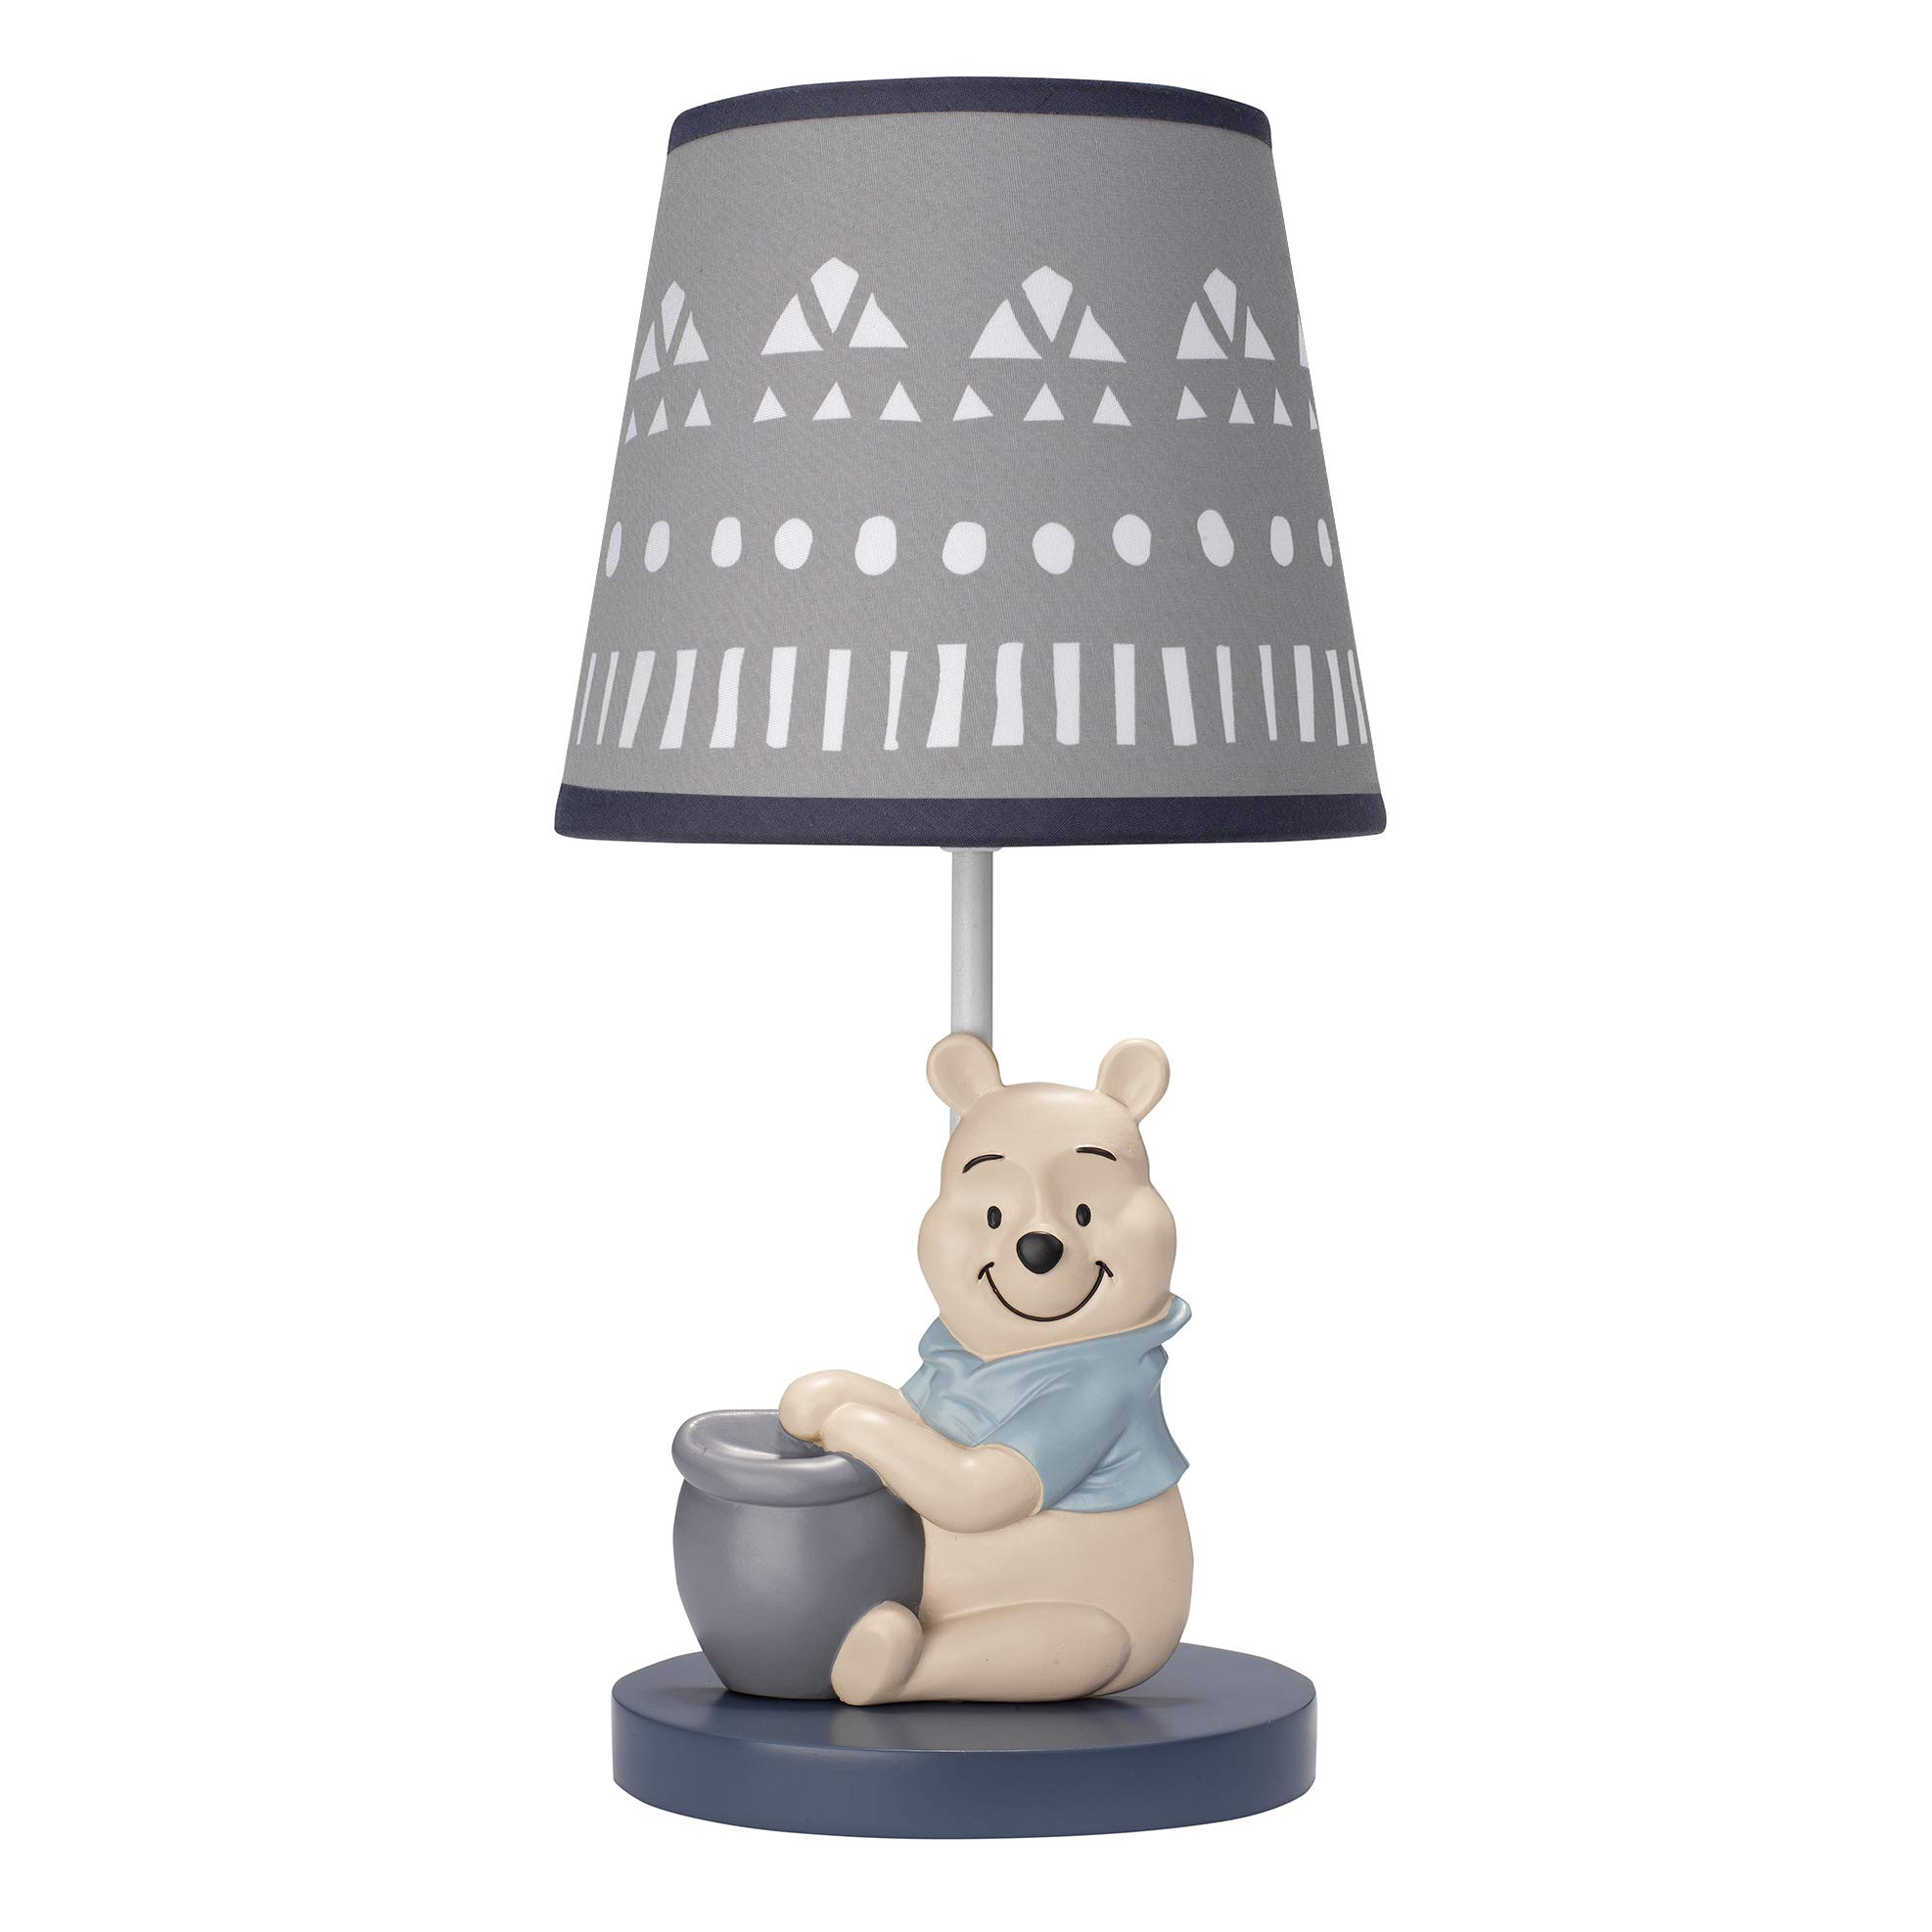 Disney Baby Forever Pooh Lamp with Shade & Bulb by Lambs & Ivy by Lambs & Ivy